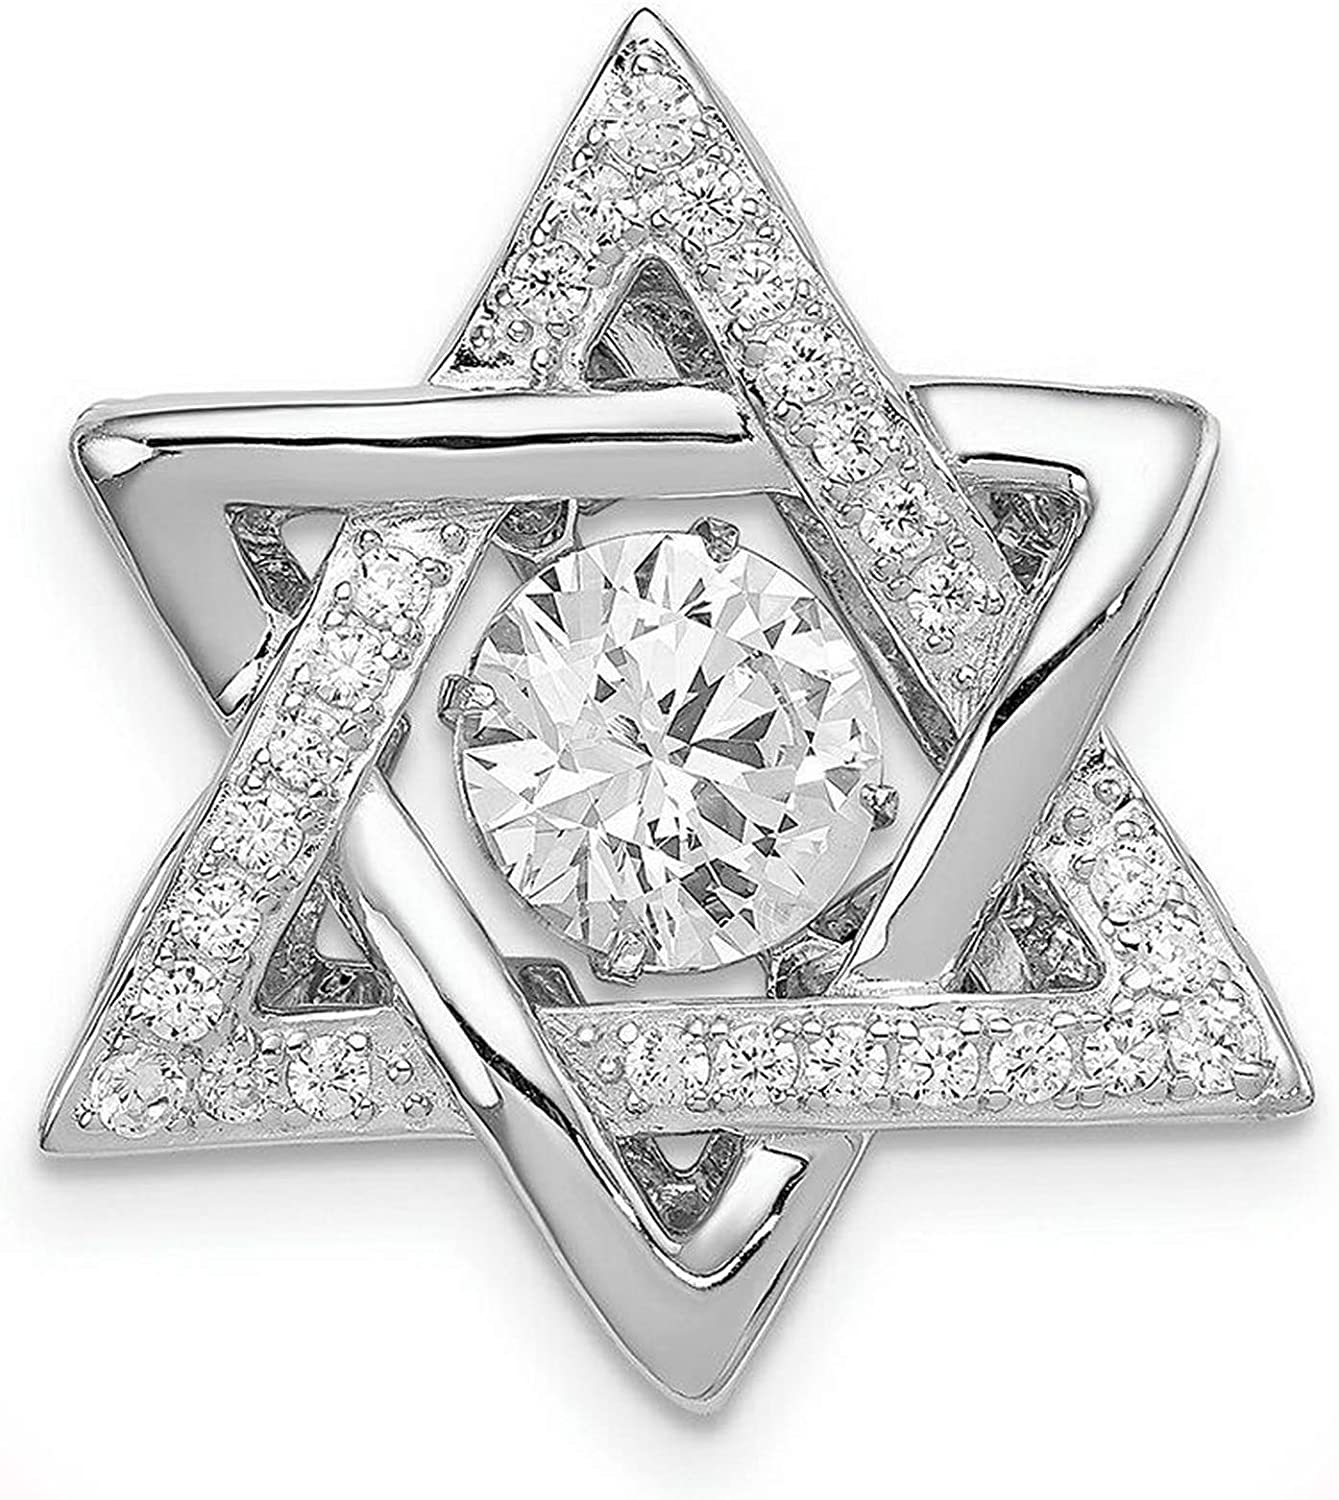 Package of Silver favorite Sterling Max 59% OFF 925 Platinum-Plated David Star wit